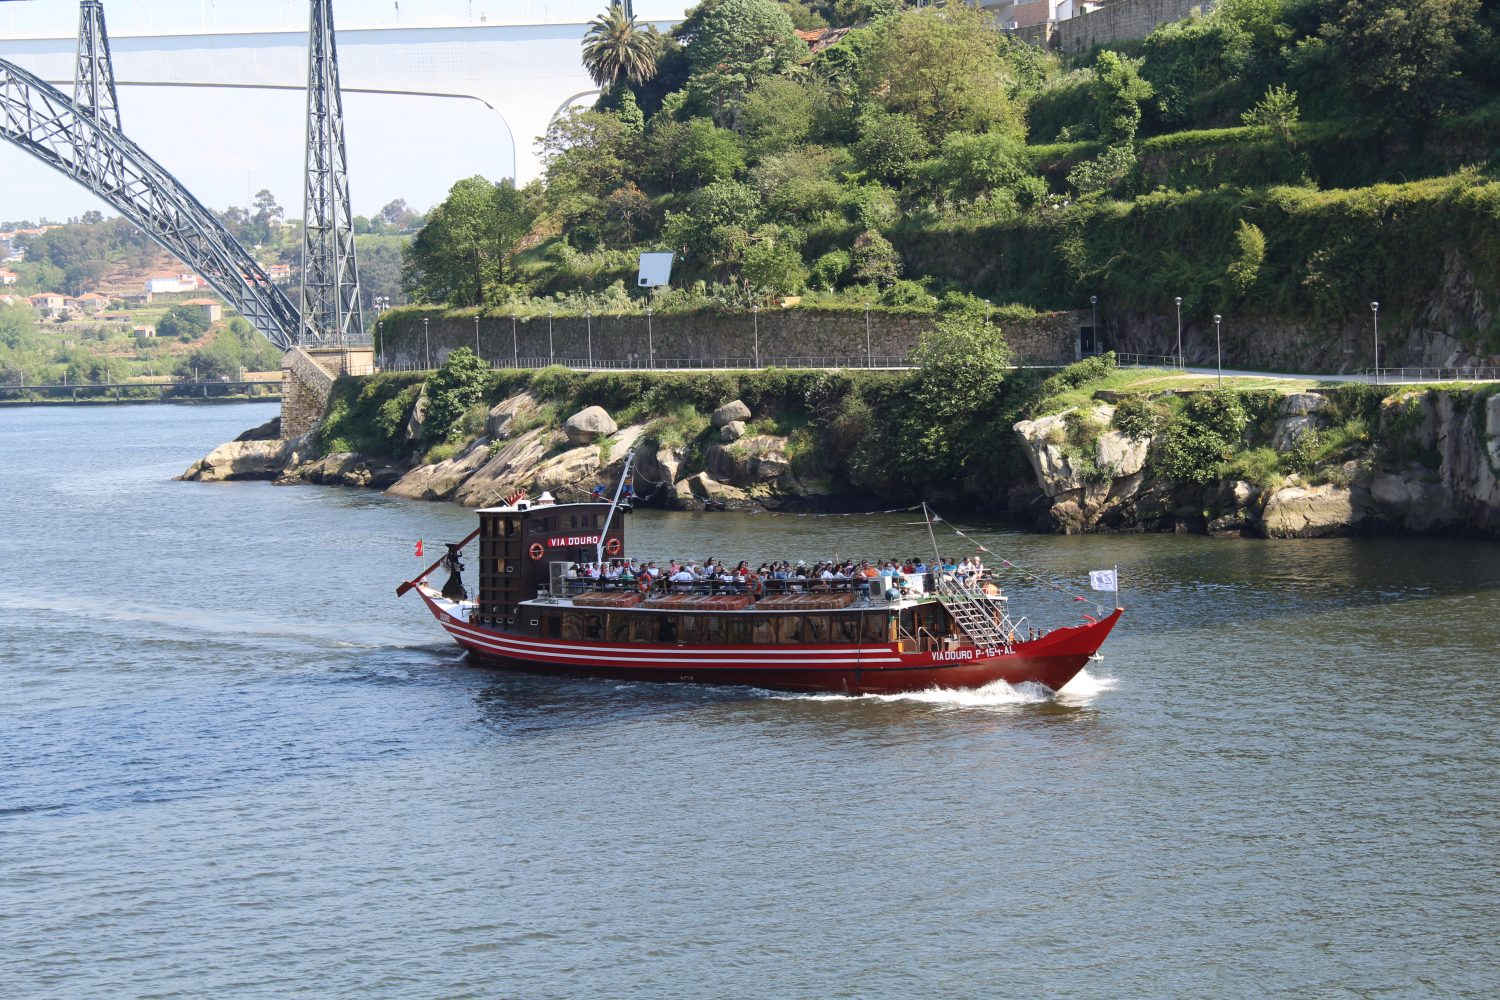 Rabelo boat doing the 6 Bridges Cruise